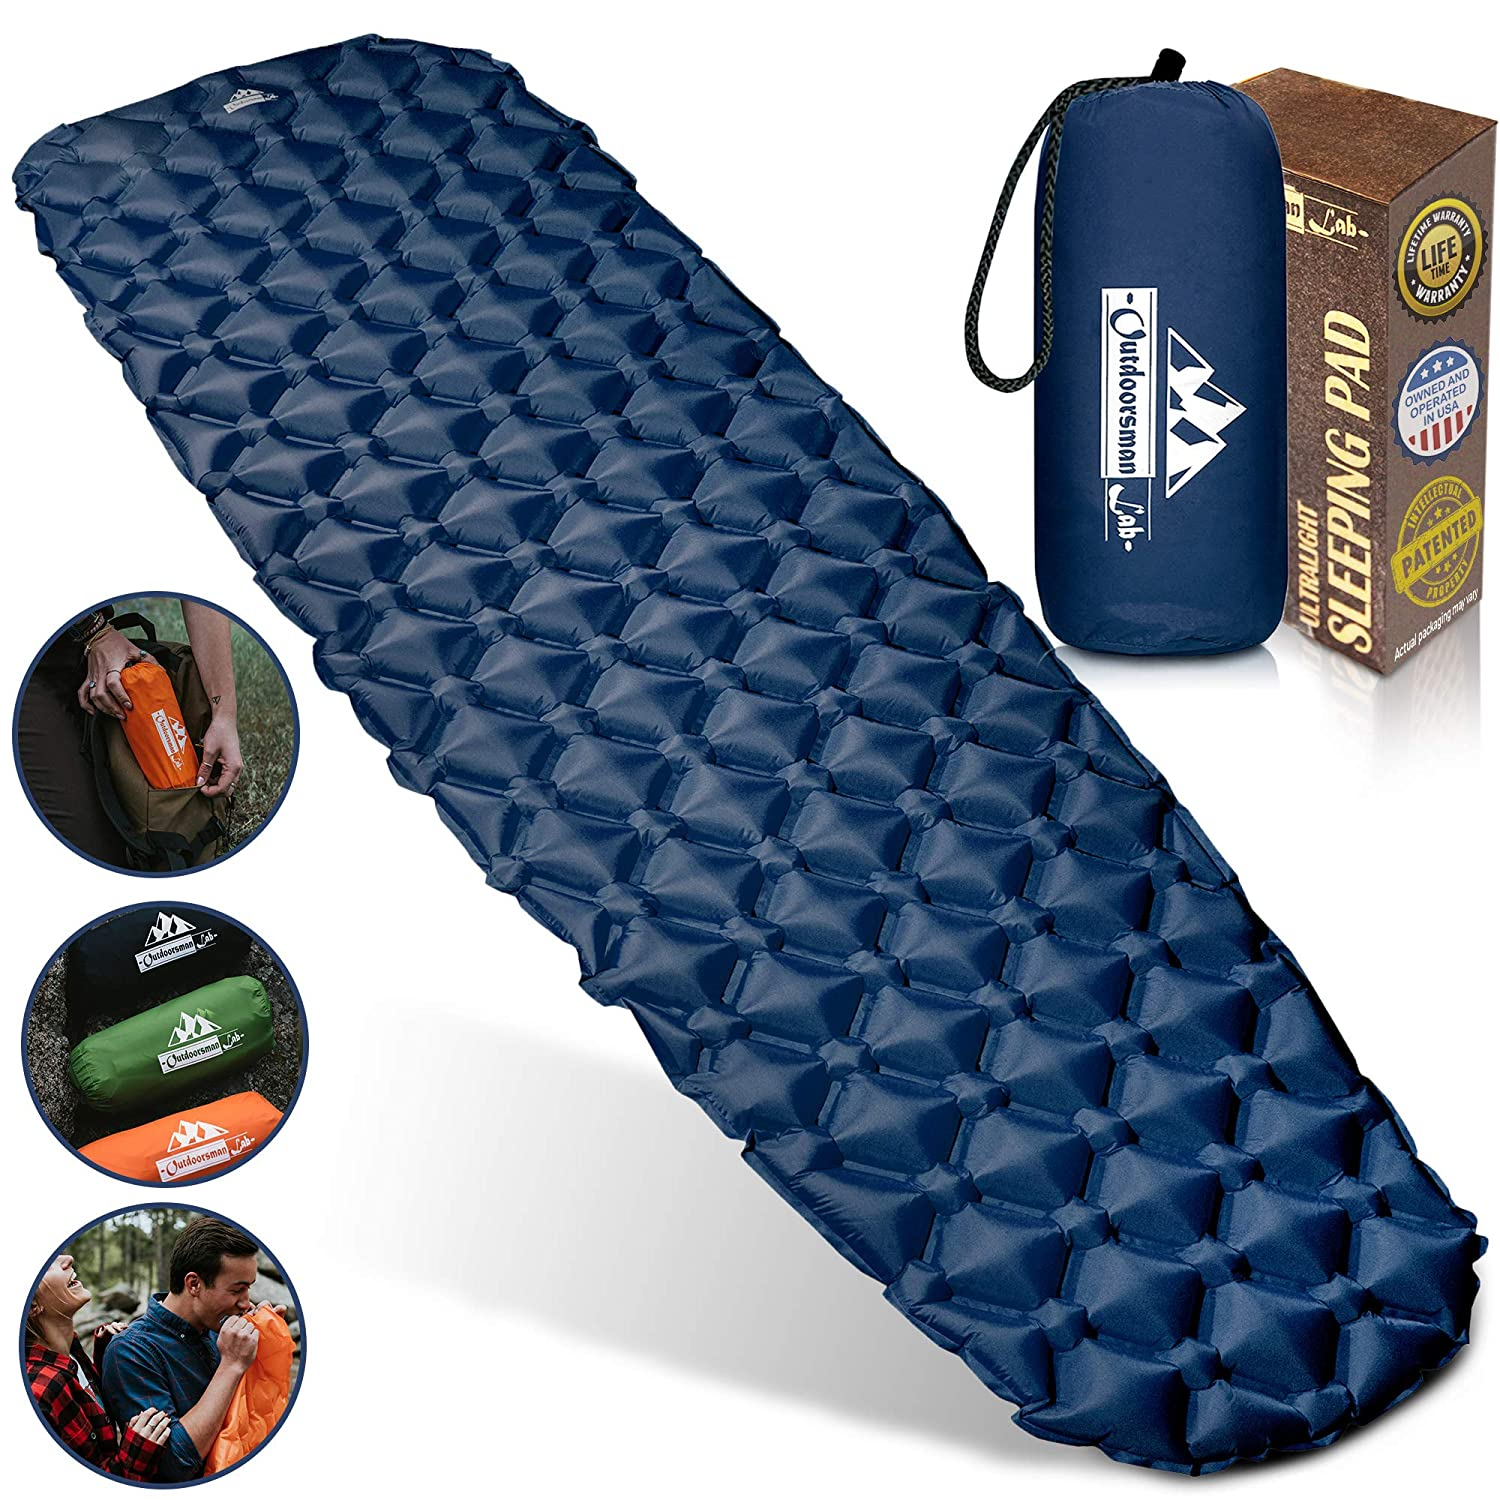 Outdoorsman Lab Camping Sleeping Pad | Ultralight Inflatable Camping Mat Pad for Backpacking & Hiking | Durable Insulated Sleeping Mat, Compact ...